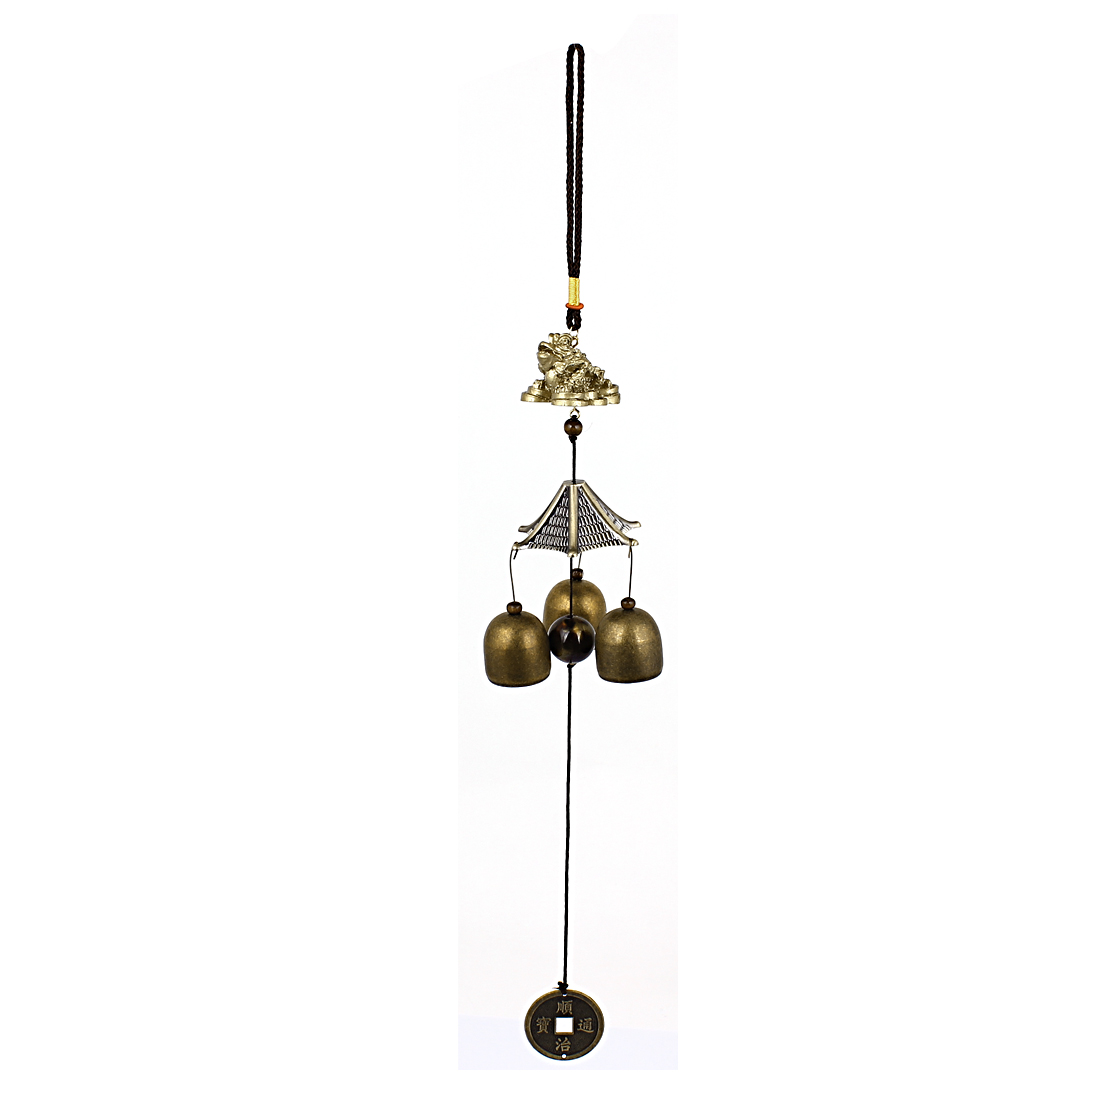 Golden Cicada Copper Cash Three Jingle Bells Dangling Detail Ornament Bronze Tone Windbell